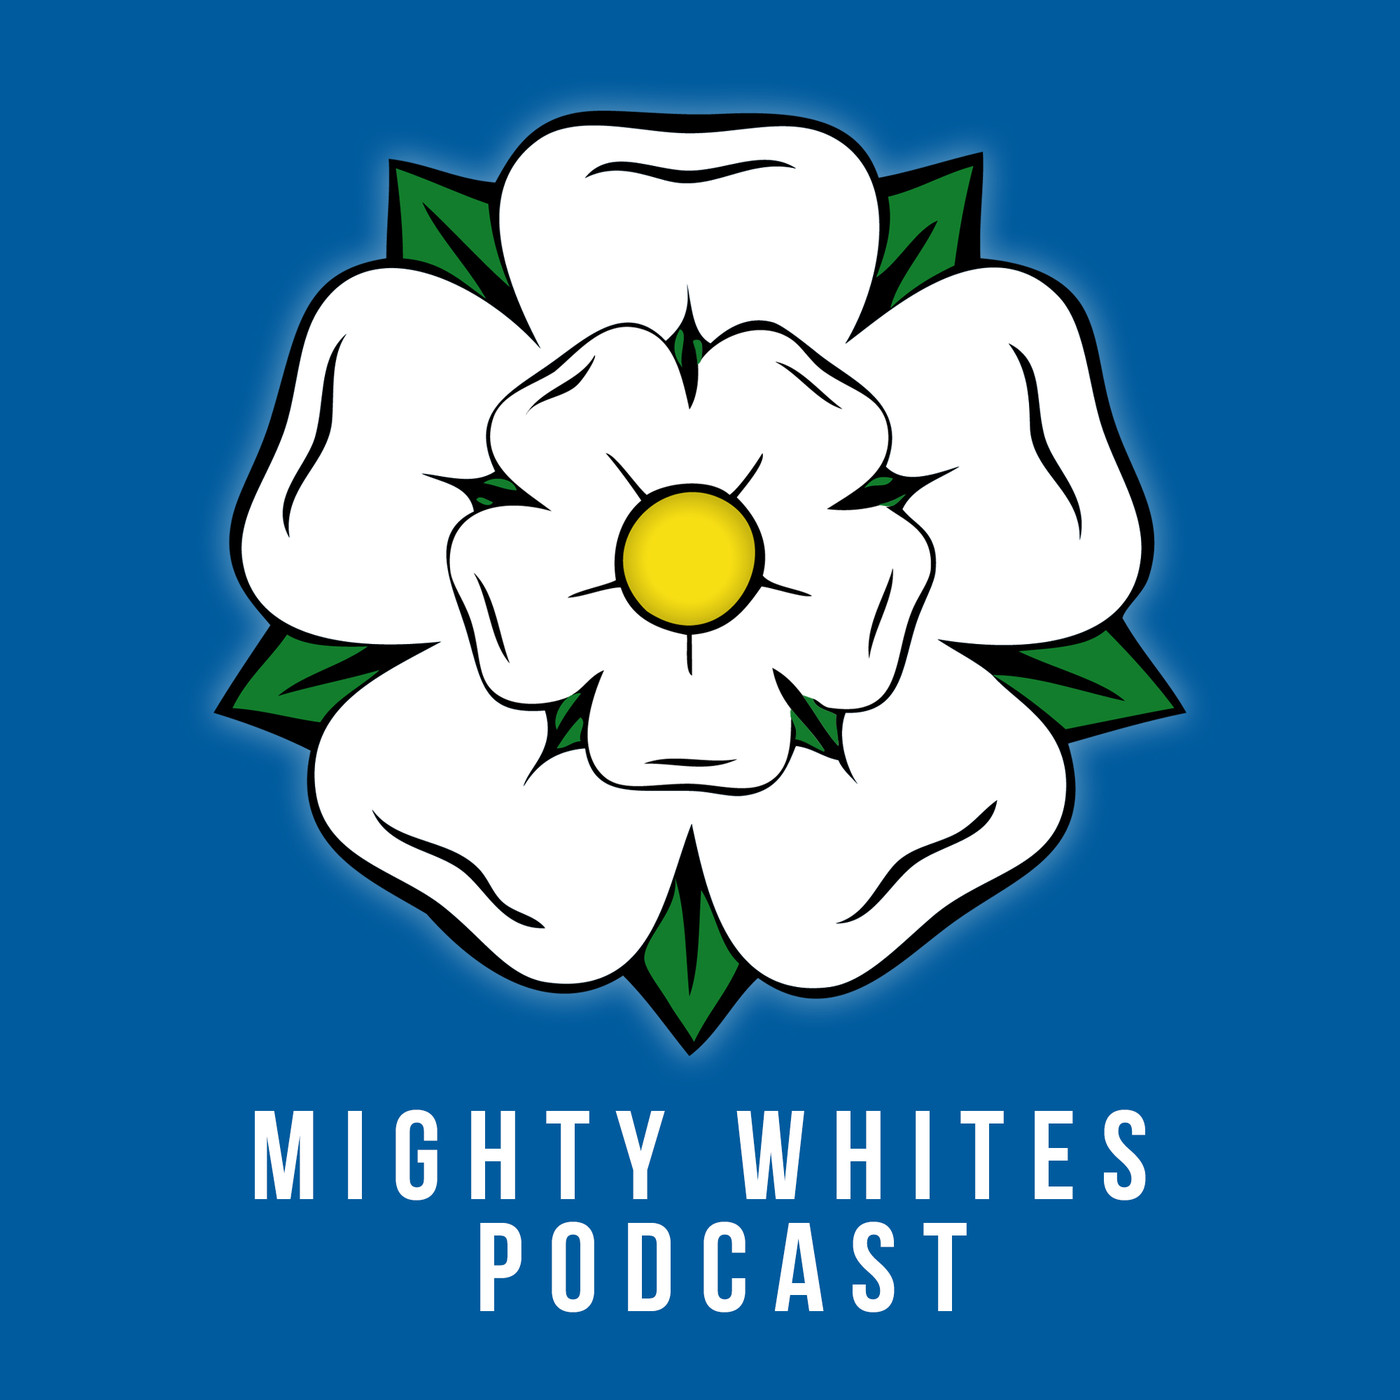 Mighty Whites Podcast – Episode 79 – 26.08.2020